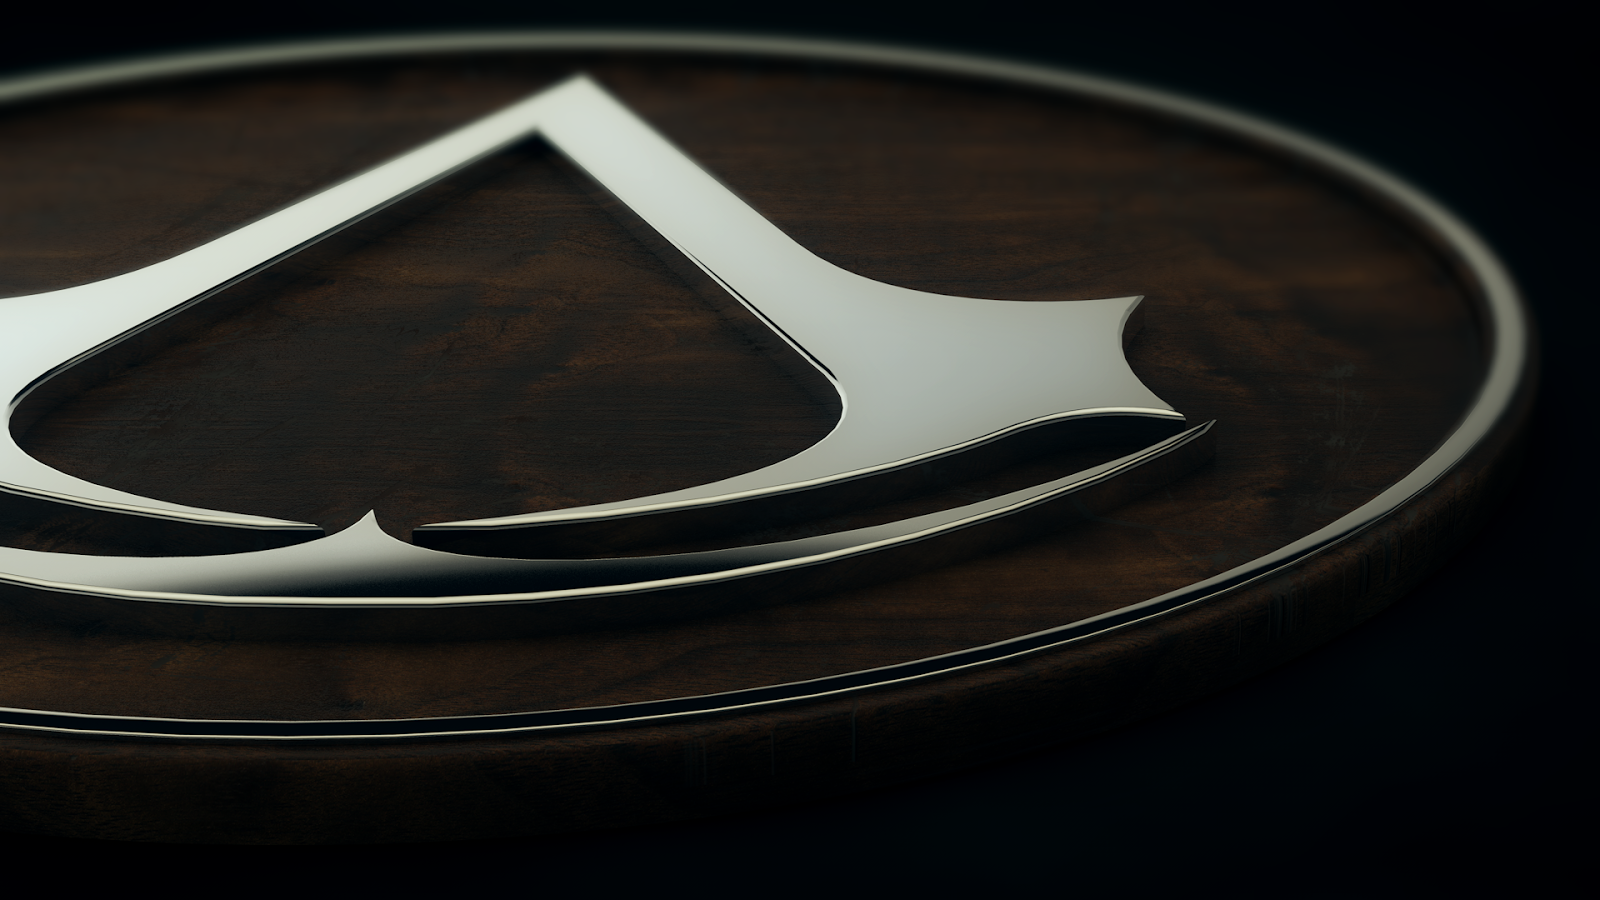 3D Assassins Creed Chrome Logo HD Wallpaper 1600x900